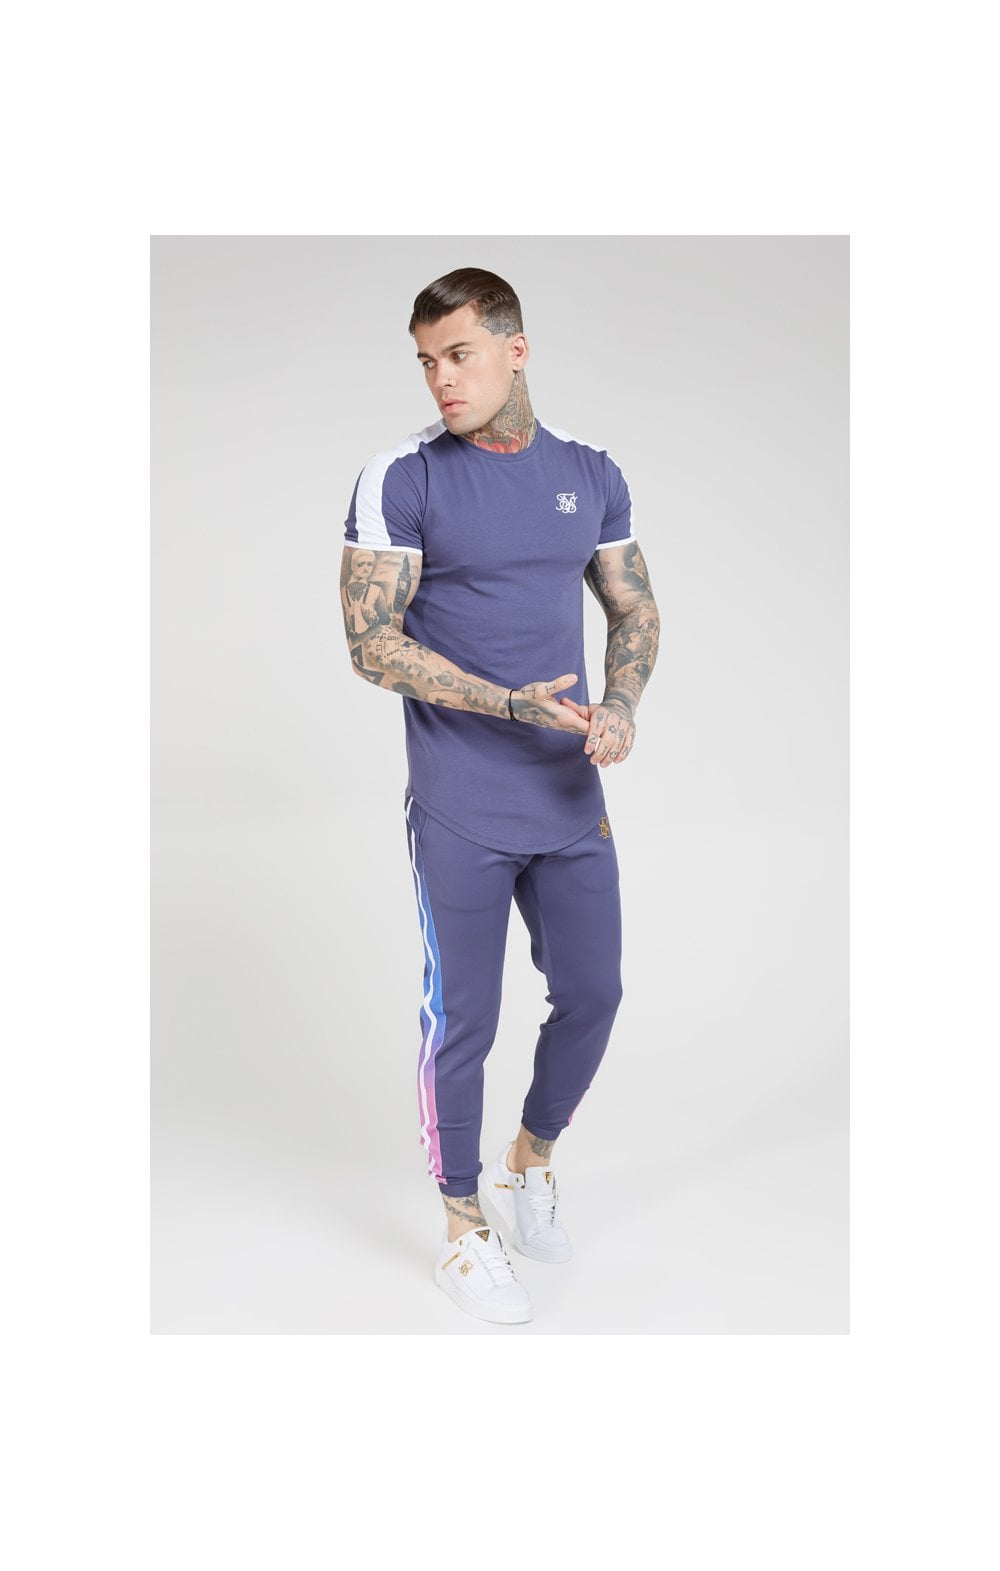 SikSilk S/S Panel Gym Tee – Ocean Slate (3)